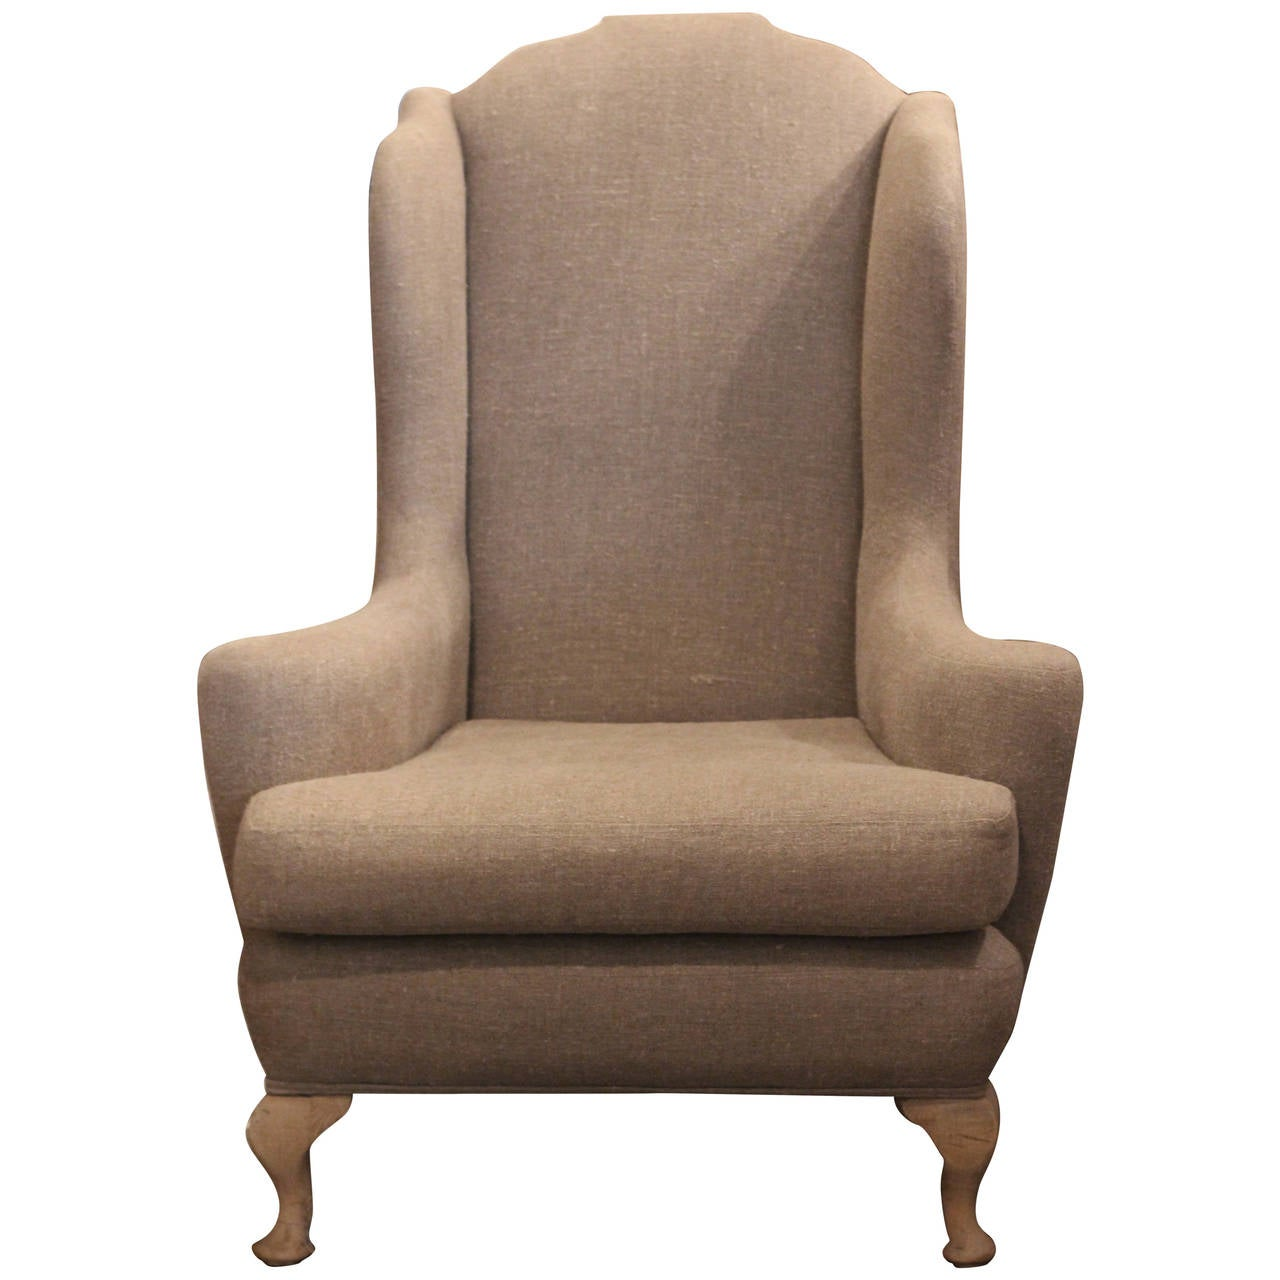 Linen Arm Chair For Sale at 1stdibs